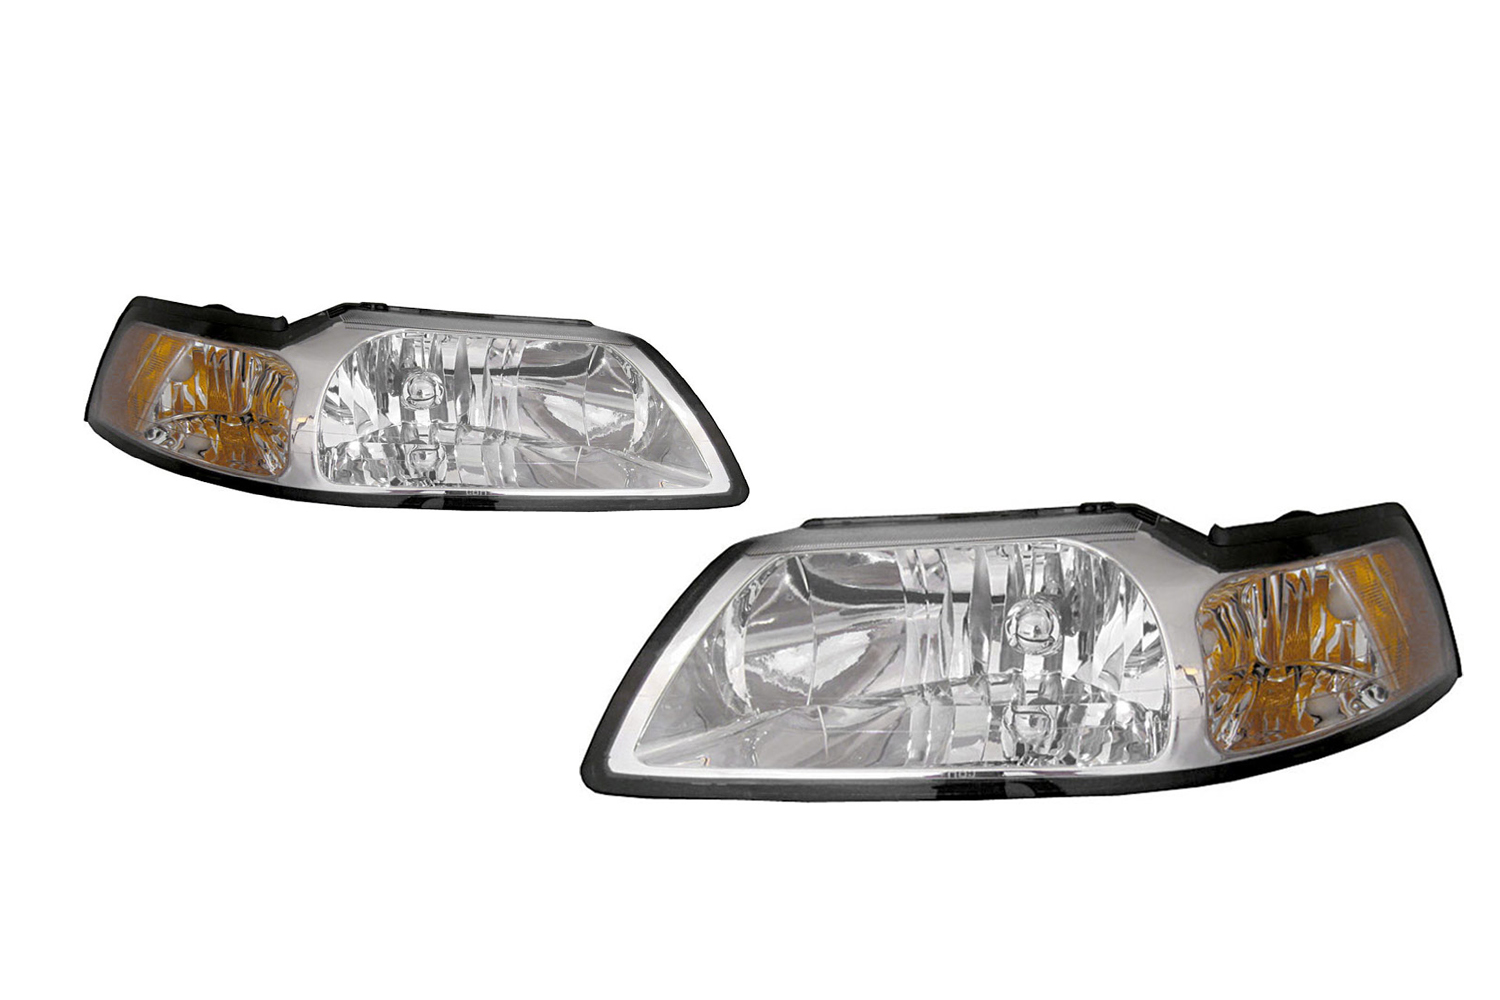 mustang headlight kit clear 99 04 fr264 b001px steeda mustang headlight kit clear 99 04 fr264 b001px steeda